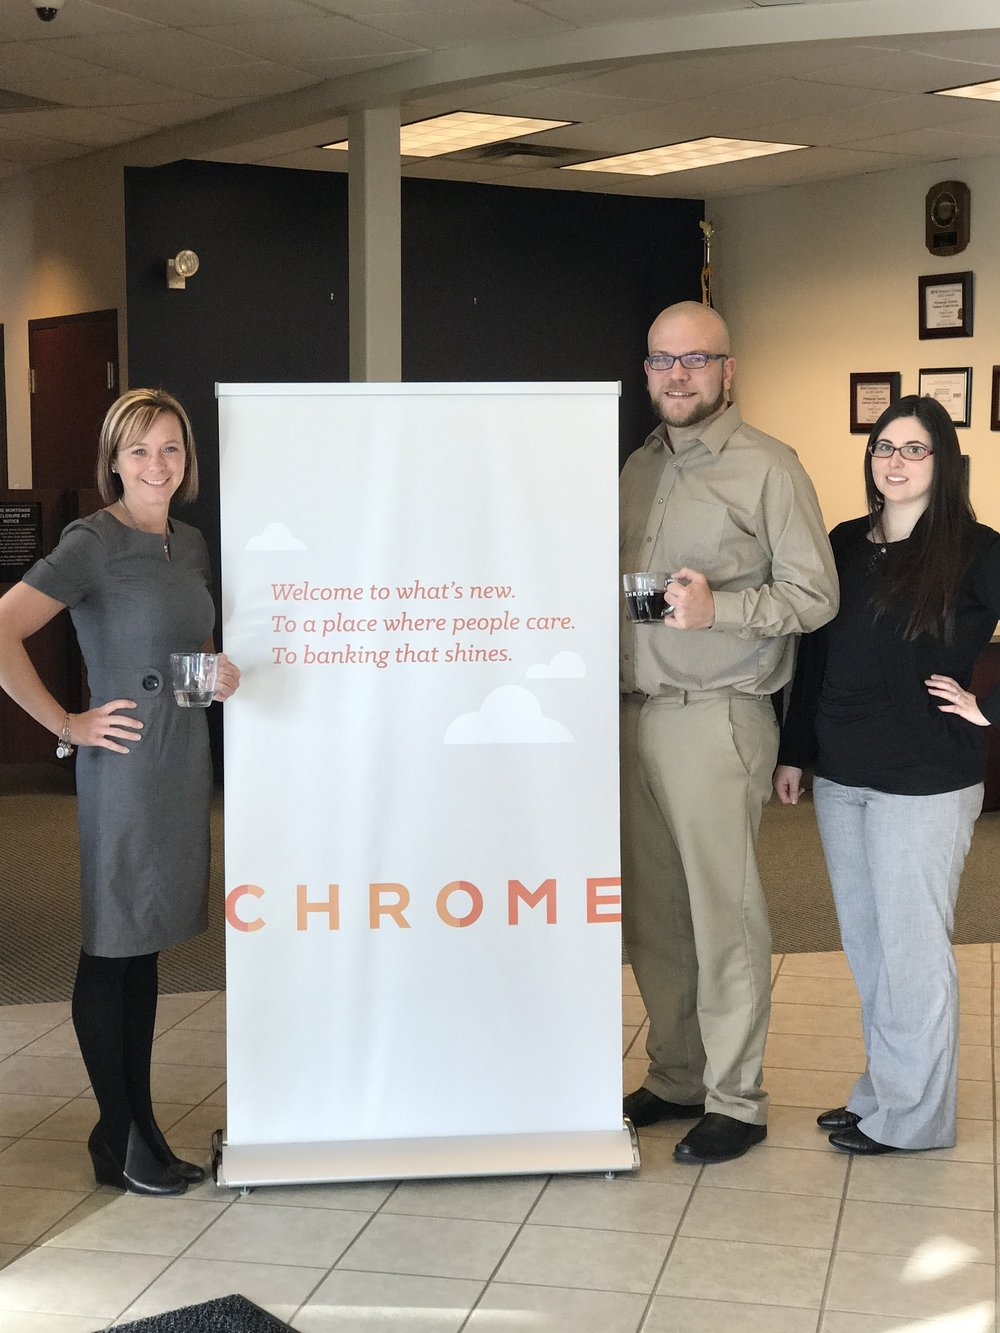 Courtney, Chris and Amy welcoming customers to the new Wexford CHROME location.